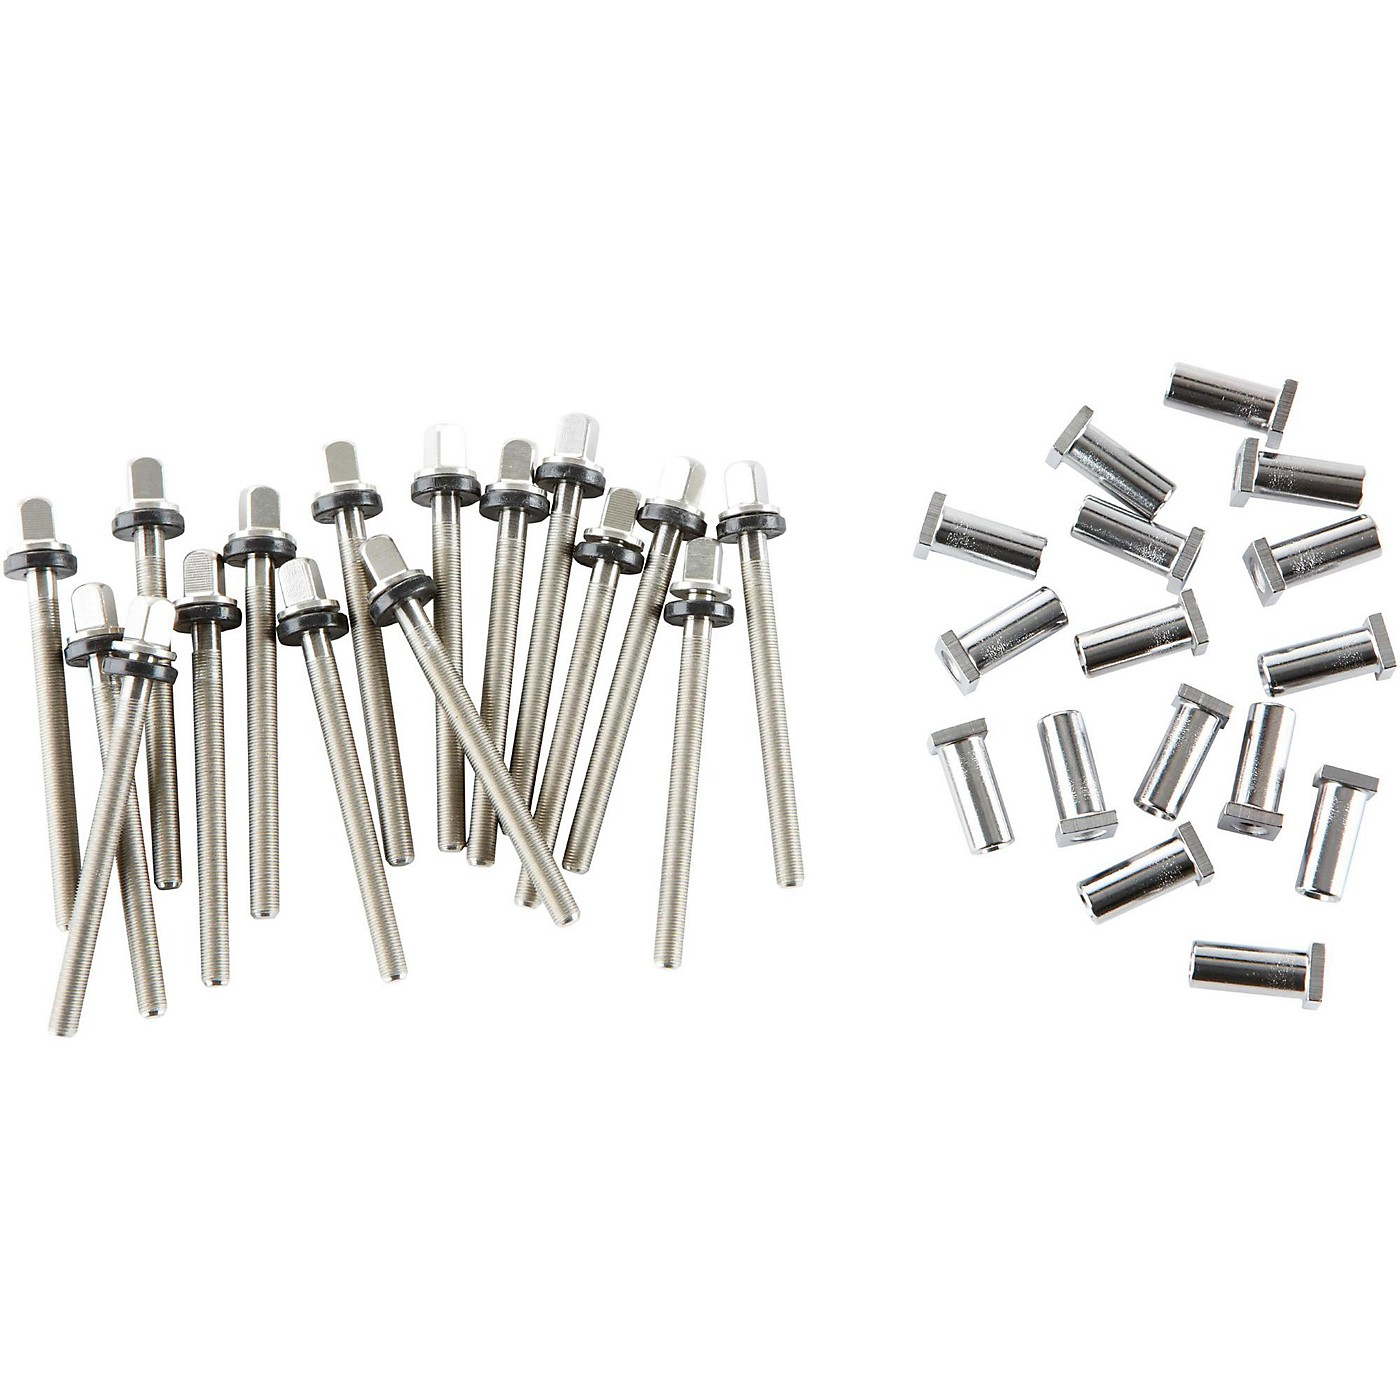 DW True Pitch Tension Rods for 14-18